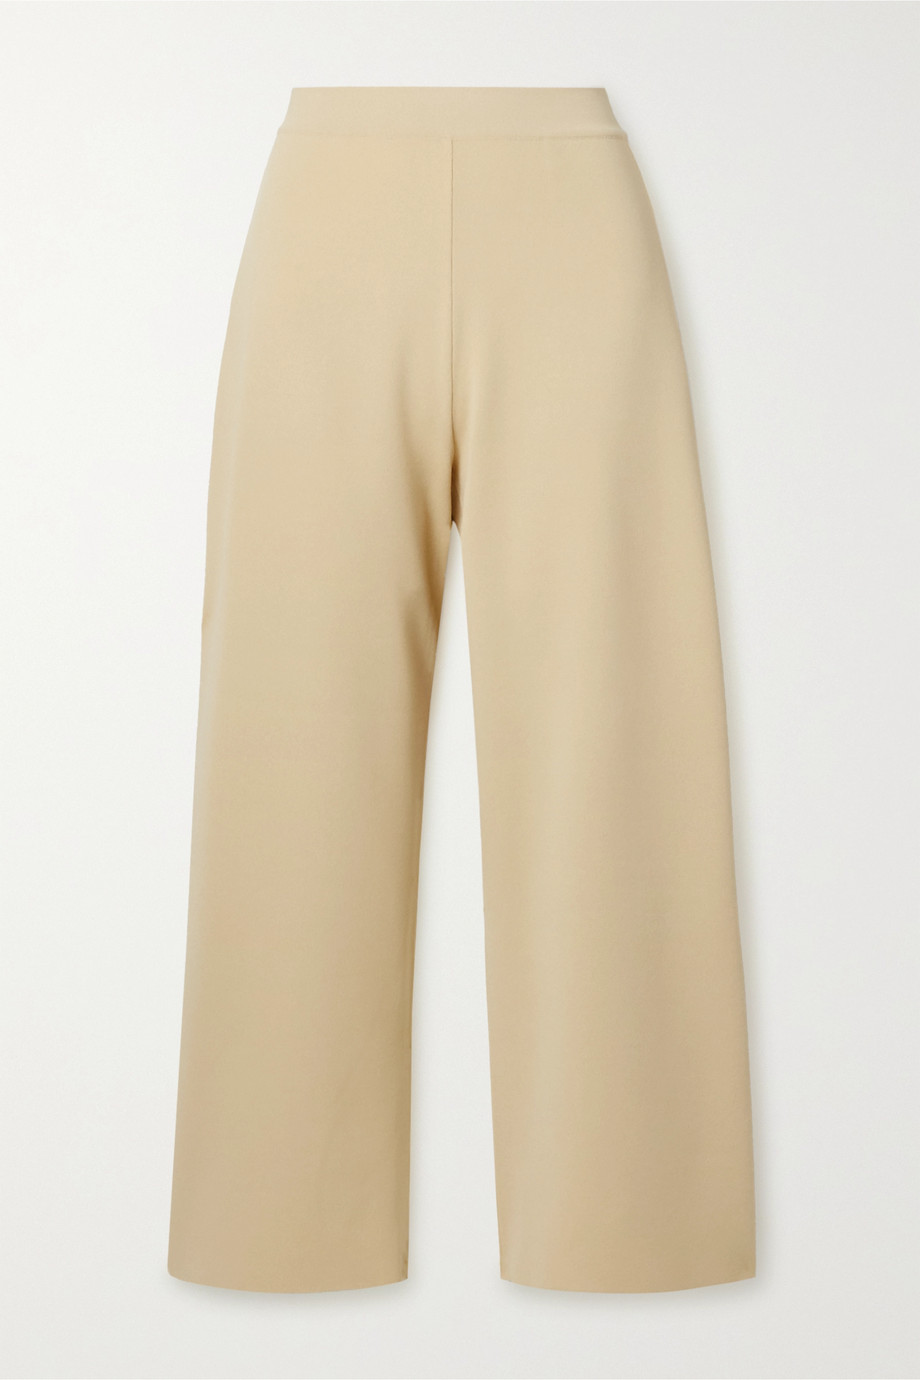 Stella McCartney + NET SUSTAIN stretch-knit culottes